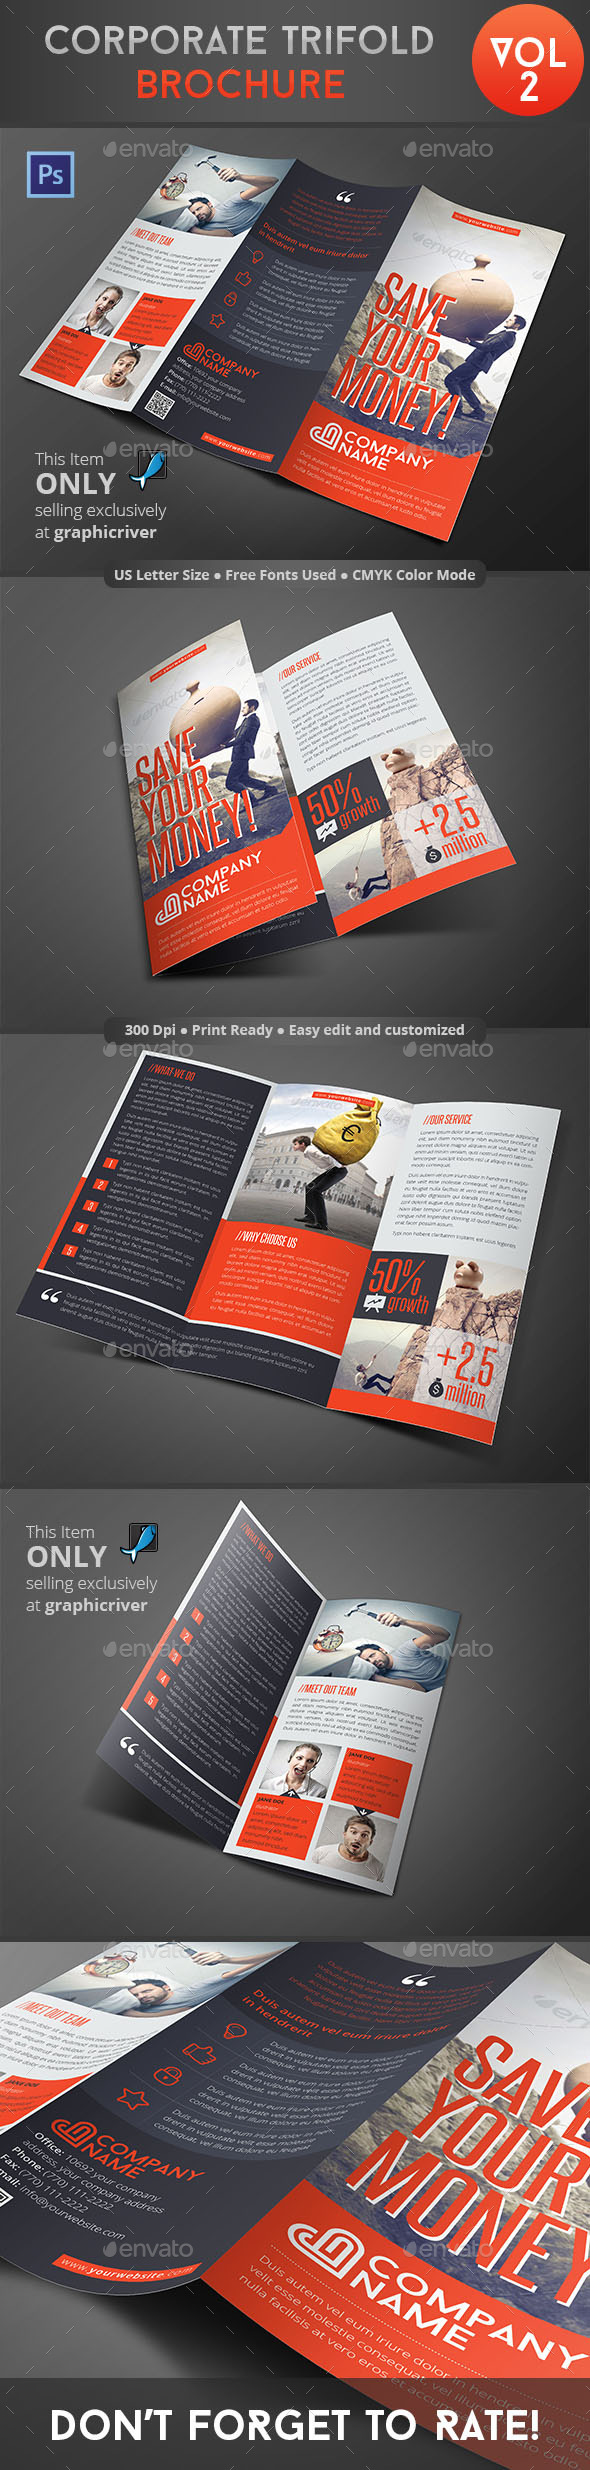 Corporate Trifold Brochure Vol 2 - Corporate Brochures